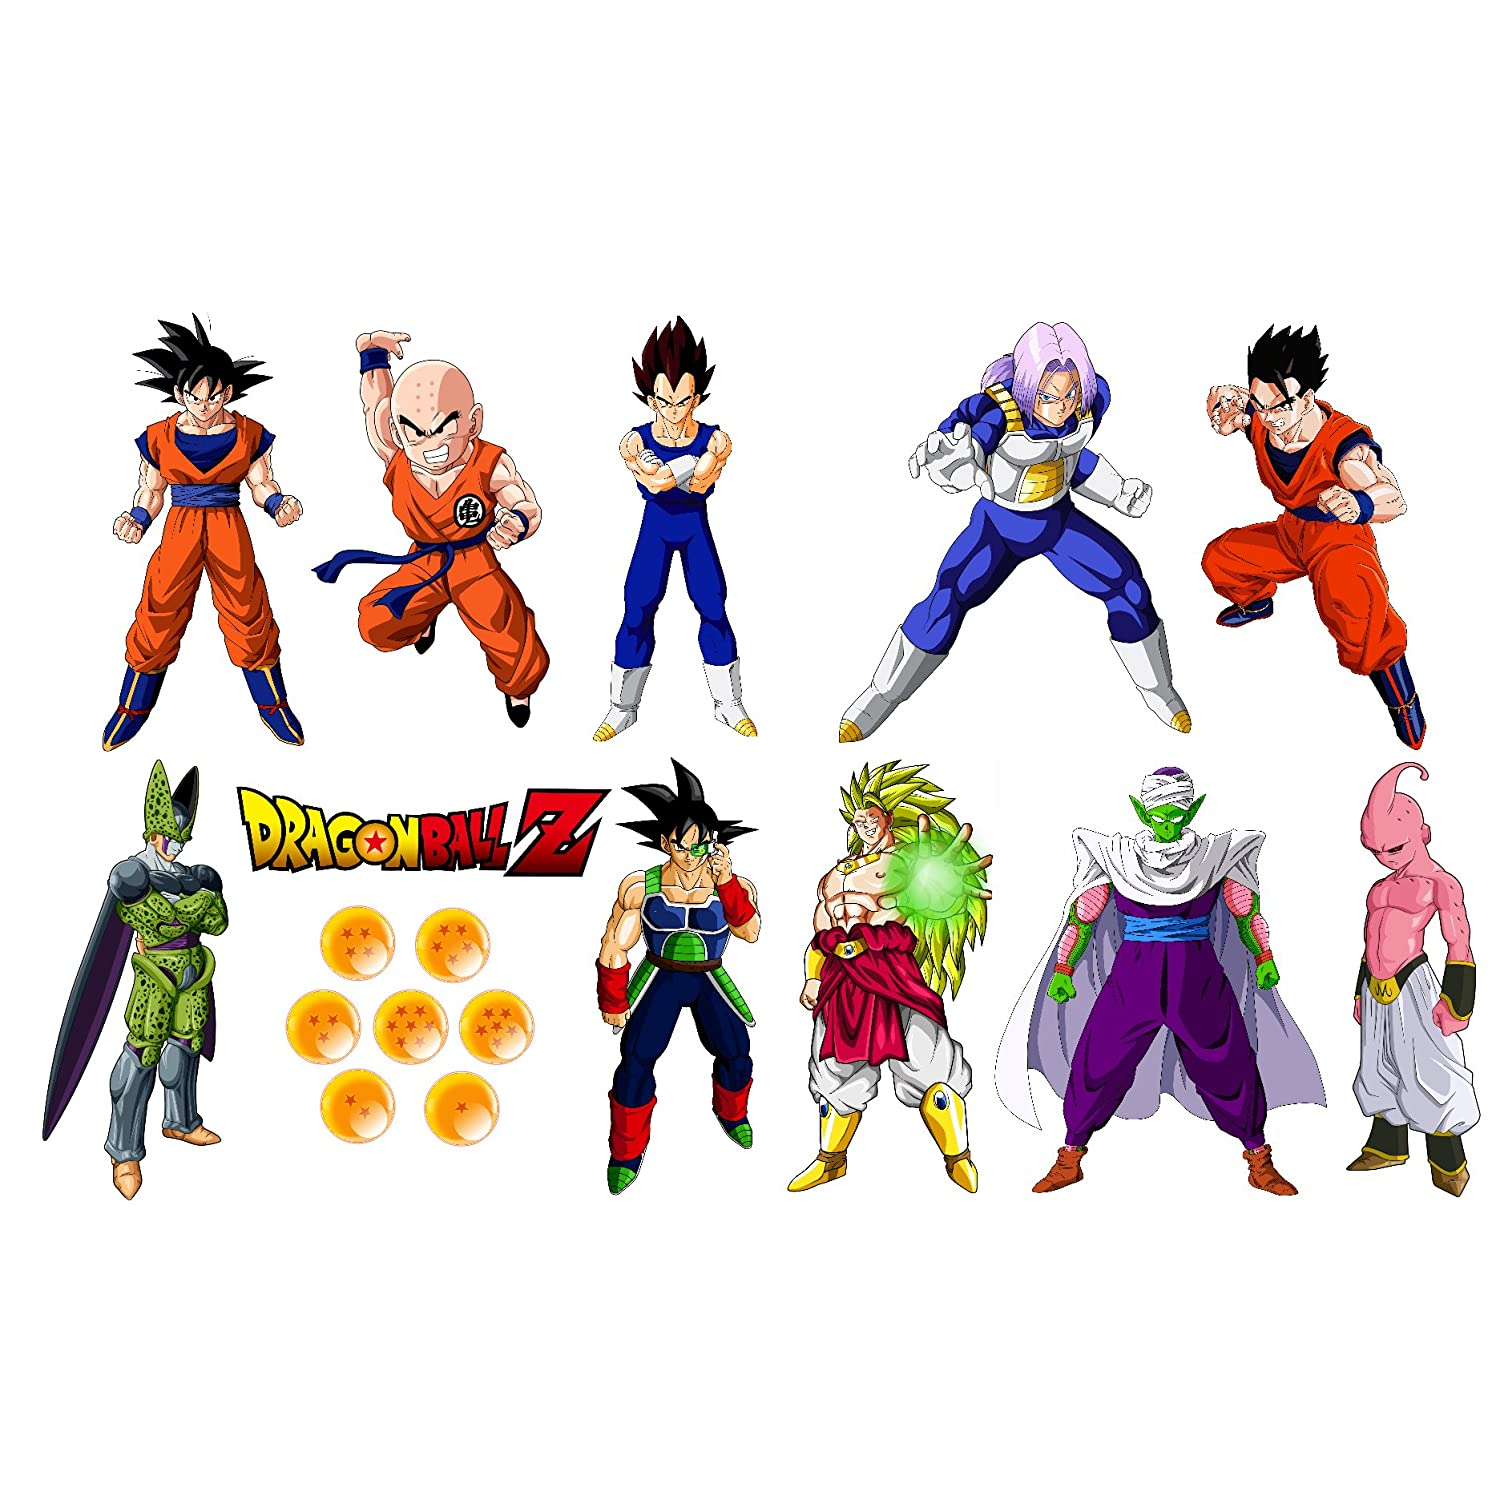 Amazon the dragonball z removable wall stickers 18 piece set amazon the dragonball z removable wall stickers 18 piece set including goku kirllin gohan trunks vegeta bardock broly cell buu amipublicfo Images